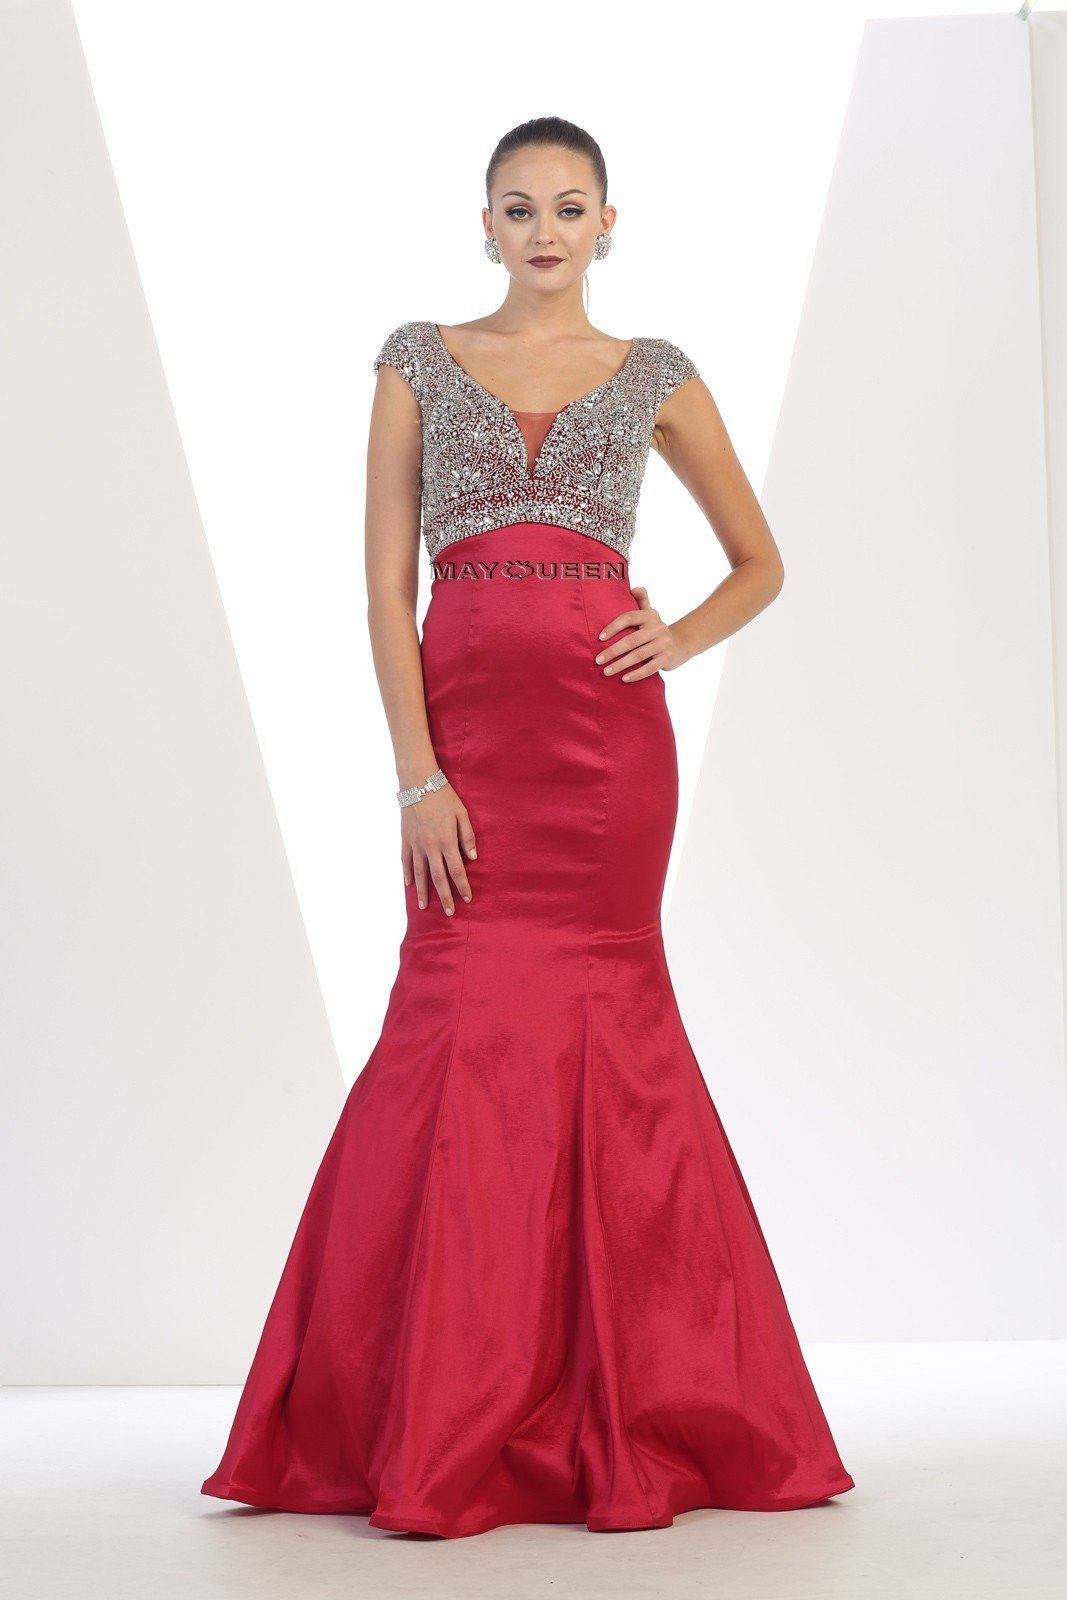 Evening party gown long prom dress formal marine corp birthday